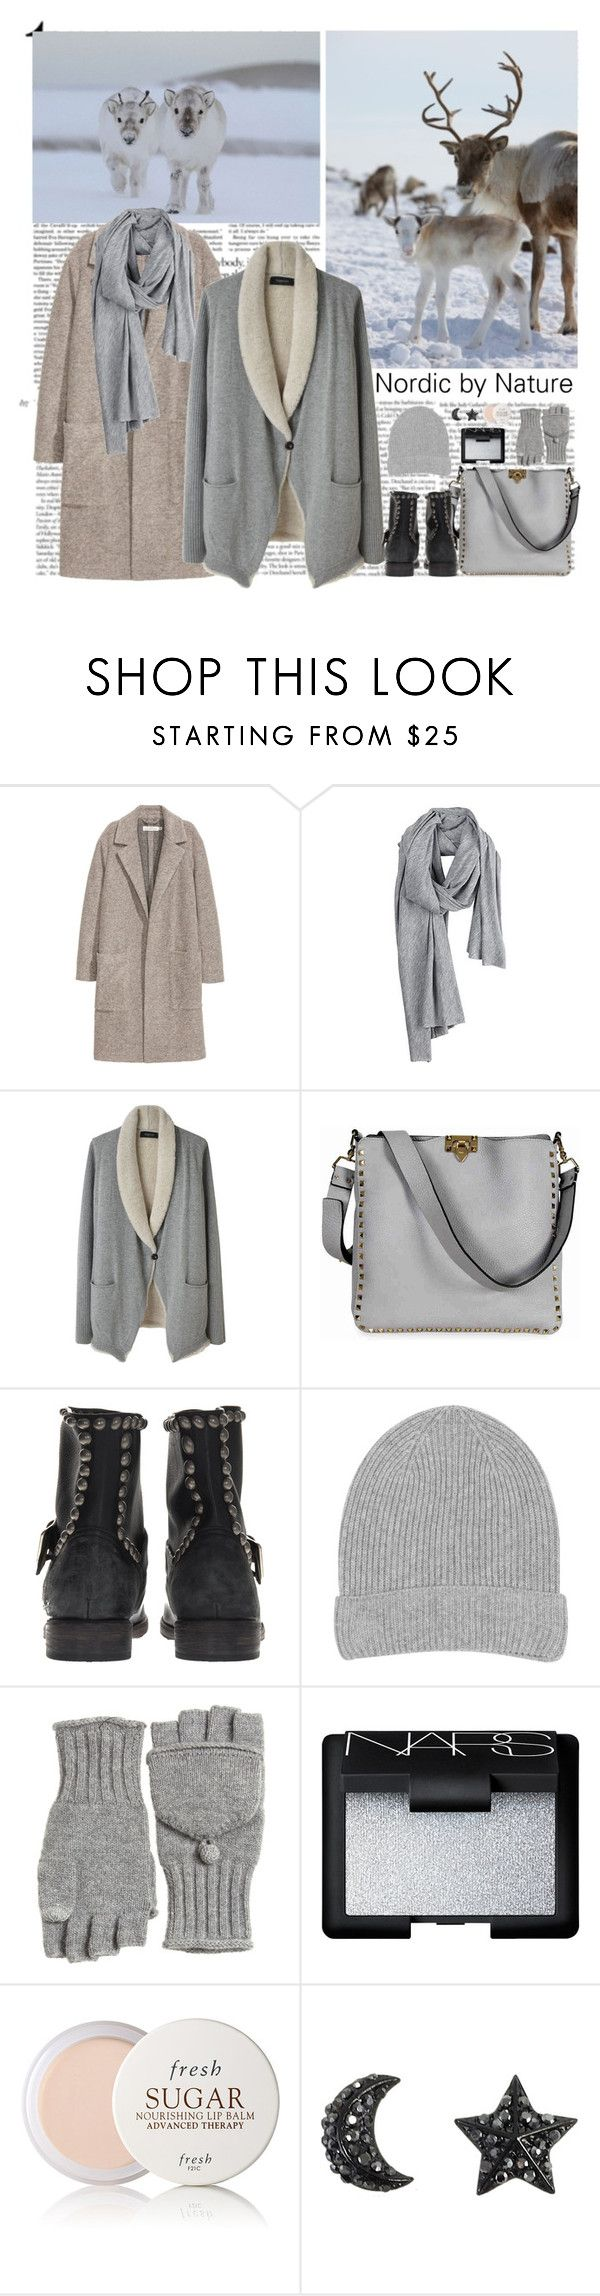 """Nordic by Nature"" by helena99 ❤ liked on Polyvore featuring Organic, Thakoon, Valentino, Mr. Wolf, Warehouse, Calypso St. Barth, NARS Cosmetics, Fresh, Winter and reindeers"